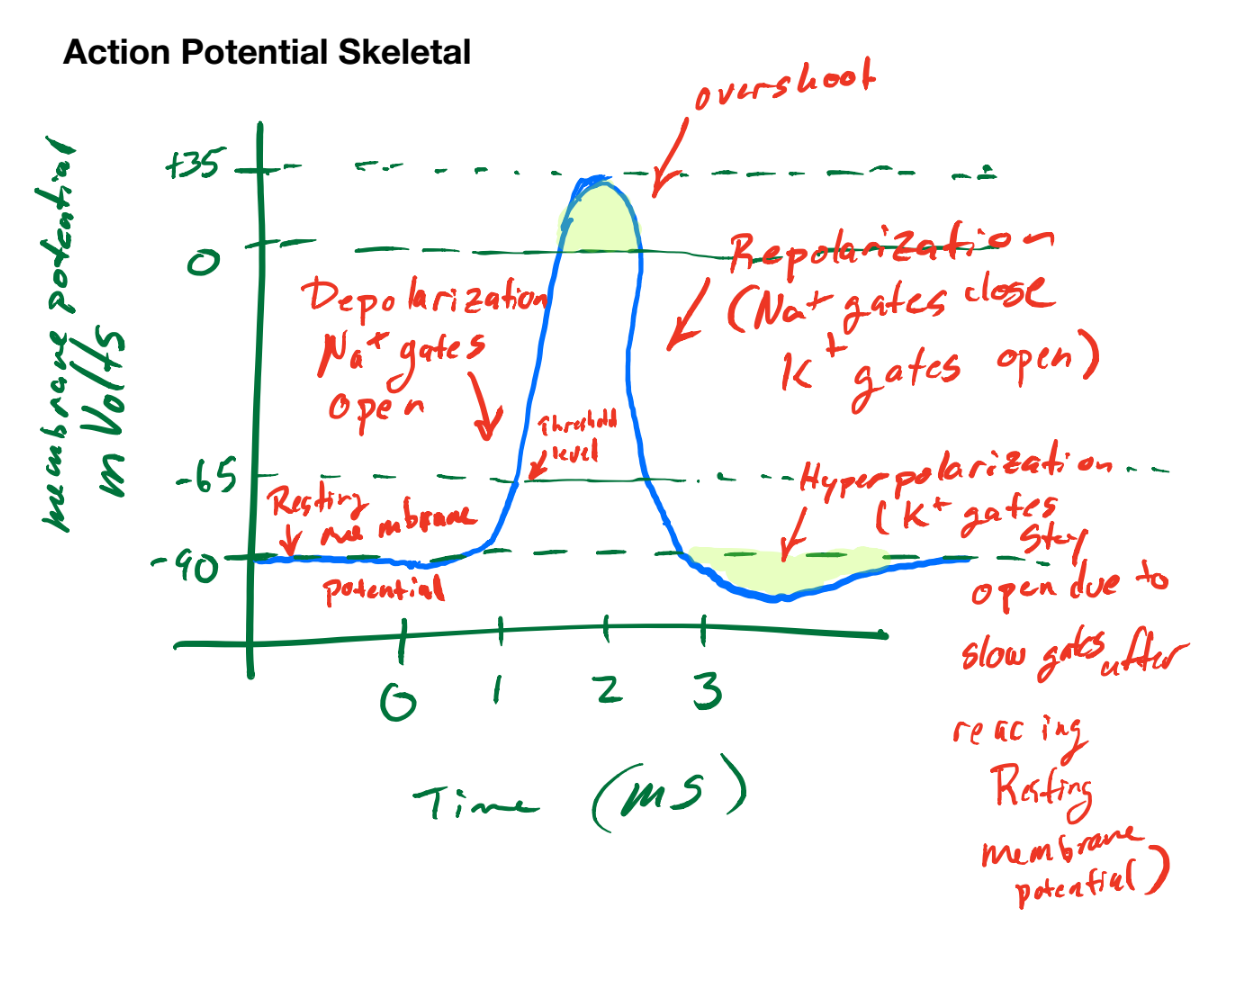 Tutors notes general cardiovascular respiratory and renal describe the effects of hypokalemia and hyperkalemia on the resting membrane potential and potassium conductance of cells including nerve and muscle ccuart Choice Image